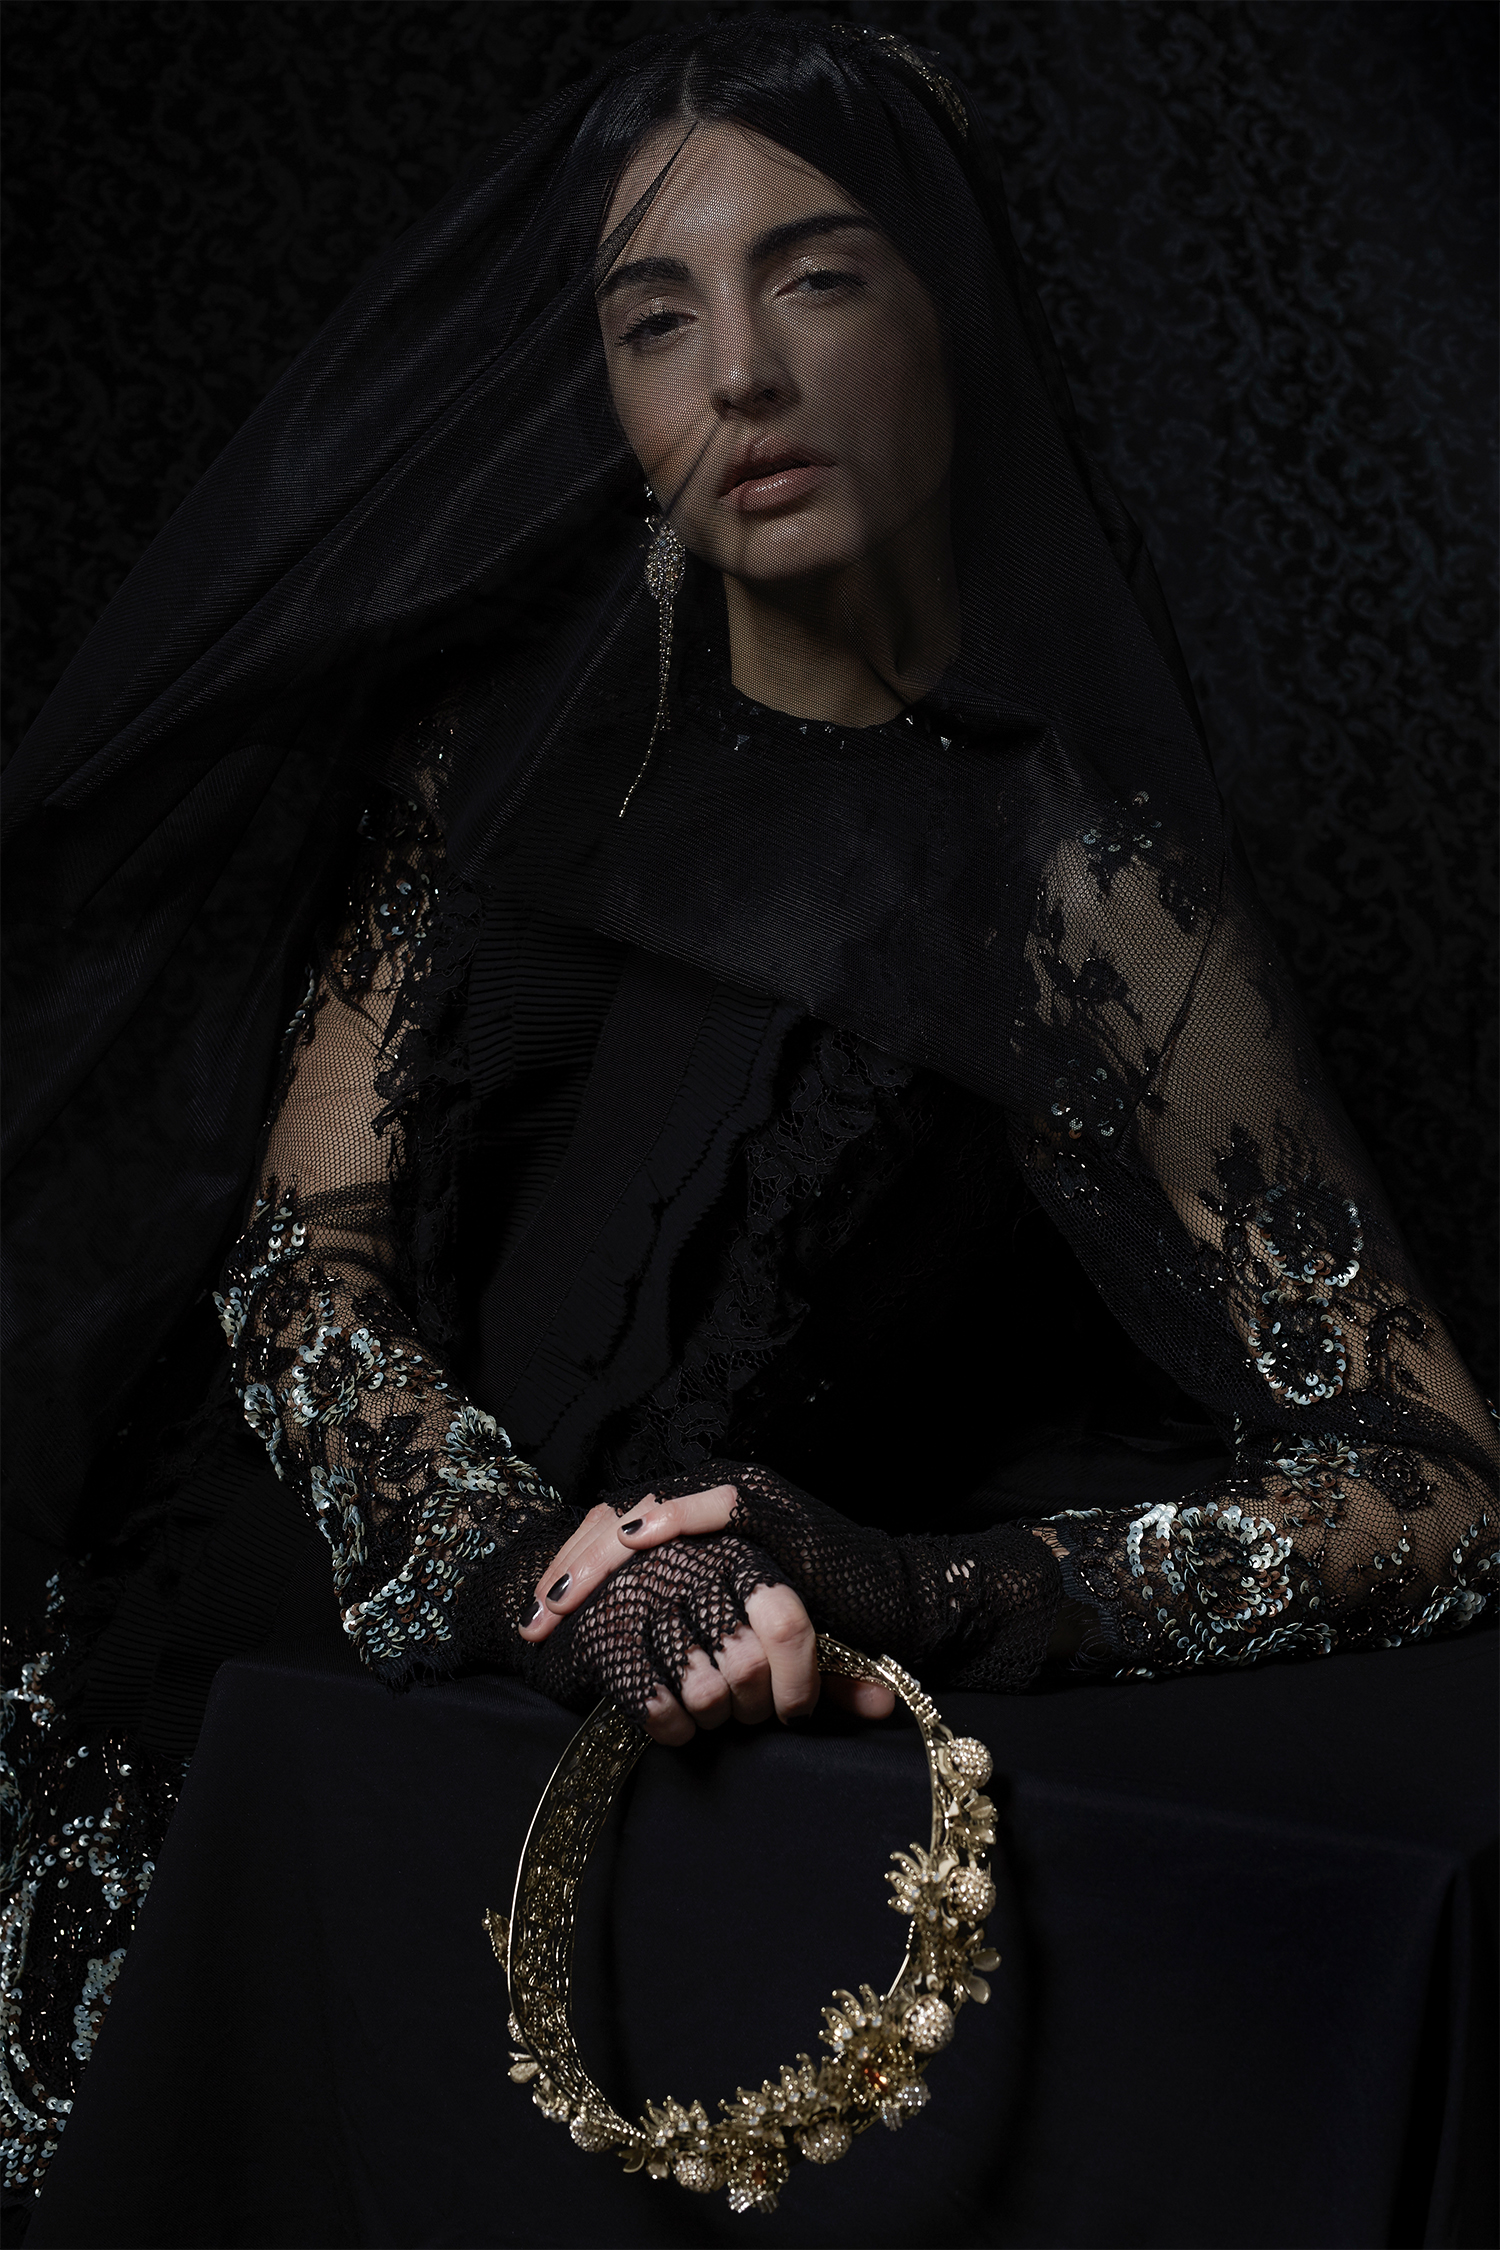 Black lace top with frills, Si-Jay; black veil dress with embroidery detail, Mori Castello;earrings and crown, Vittorio Ceccoli Jewelry